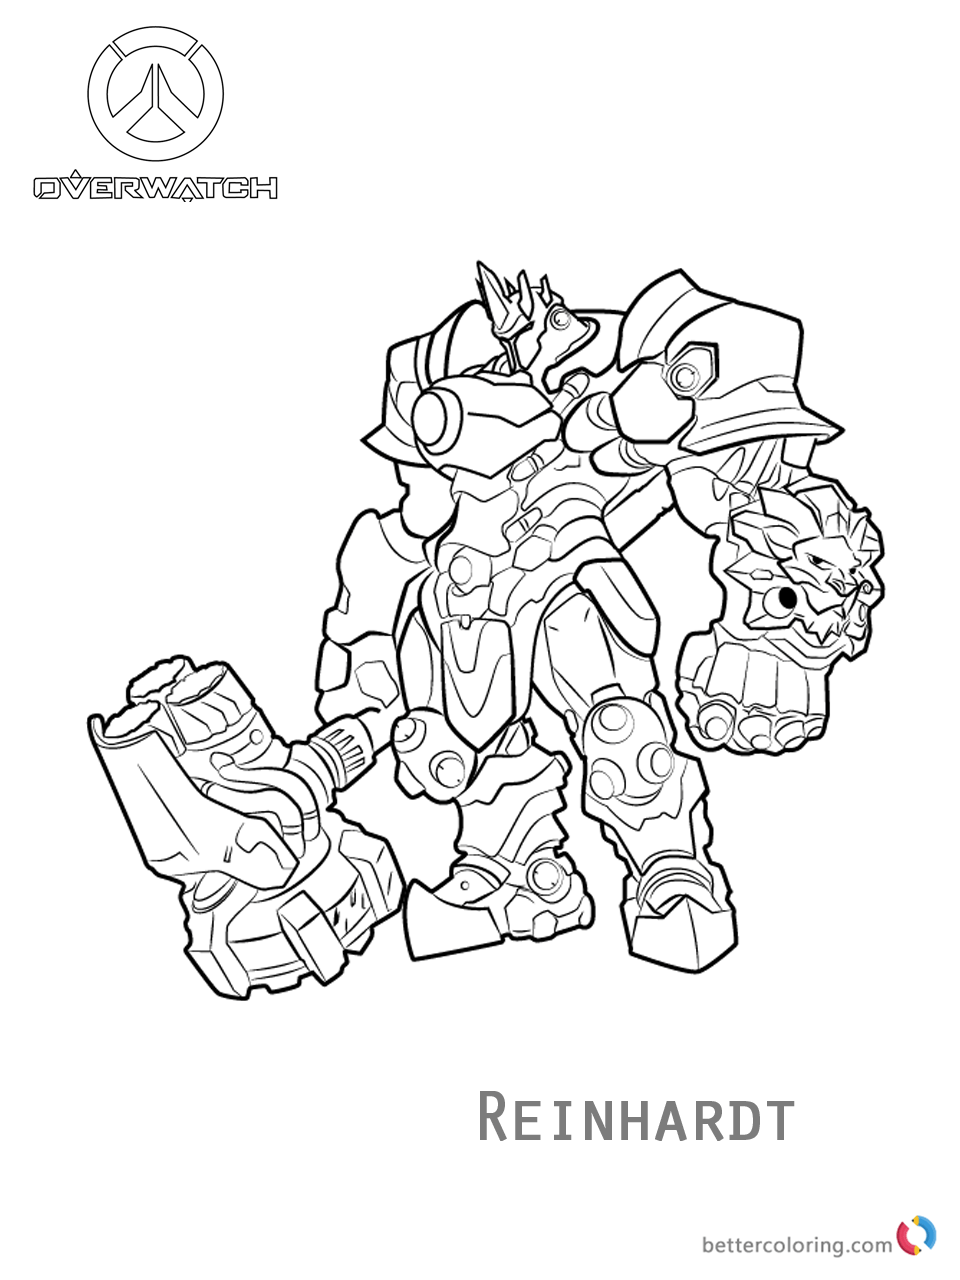 Reinhardt From Overwatch Coloring Pages Free Printable